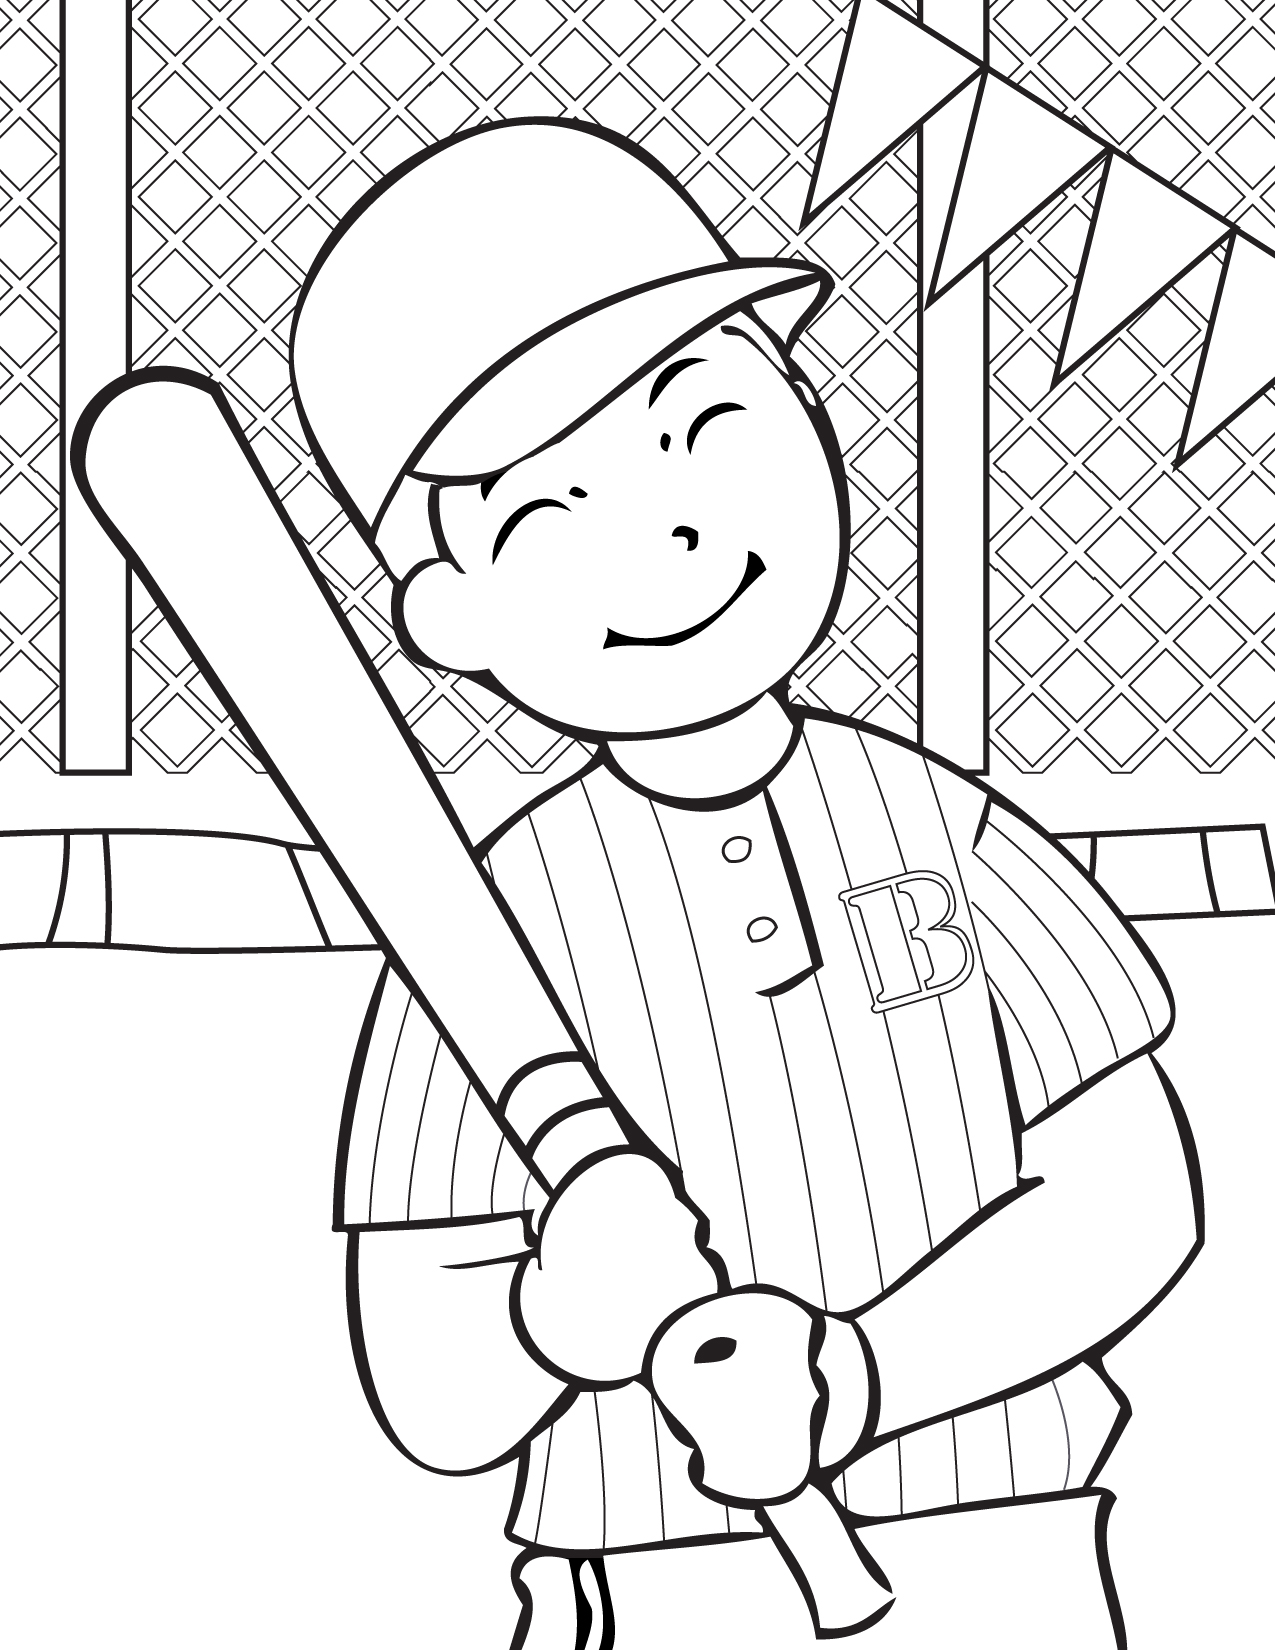 Printable Softball Coloring Sheets Coloring Pages